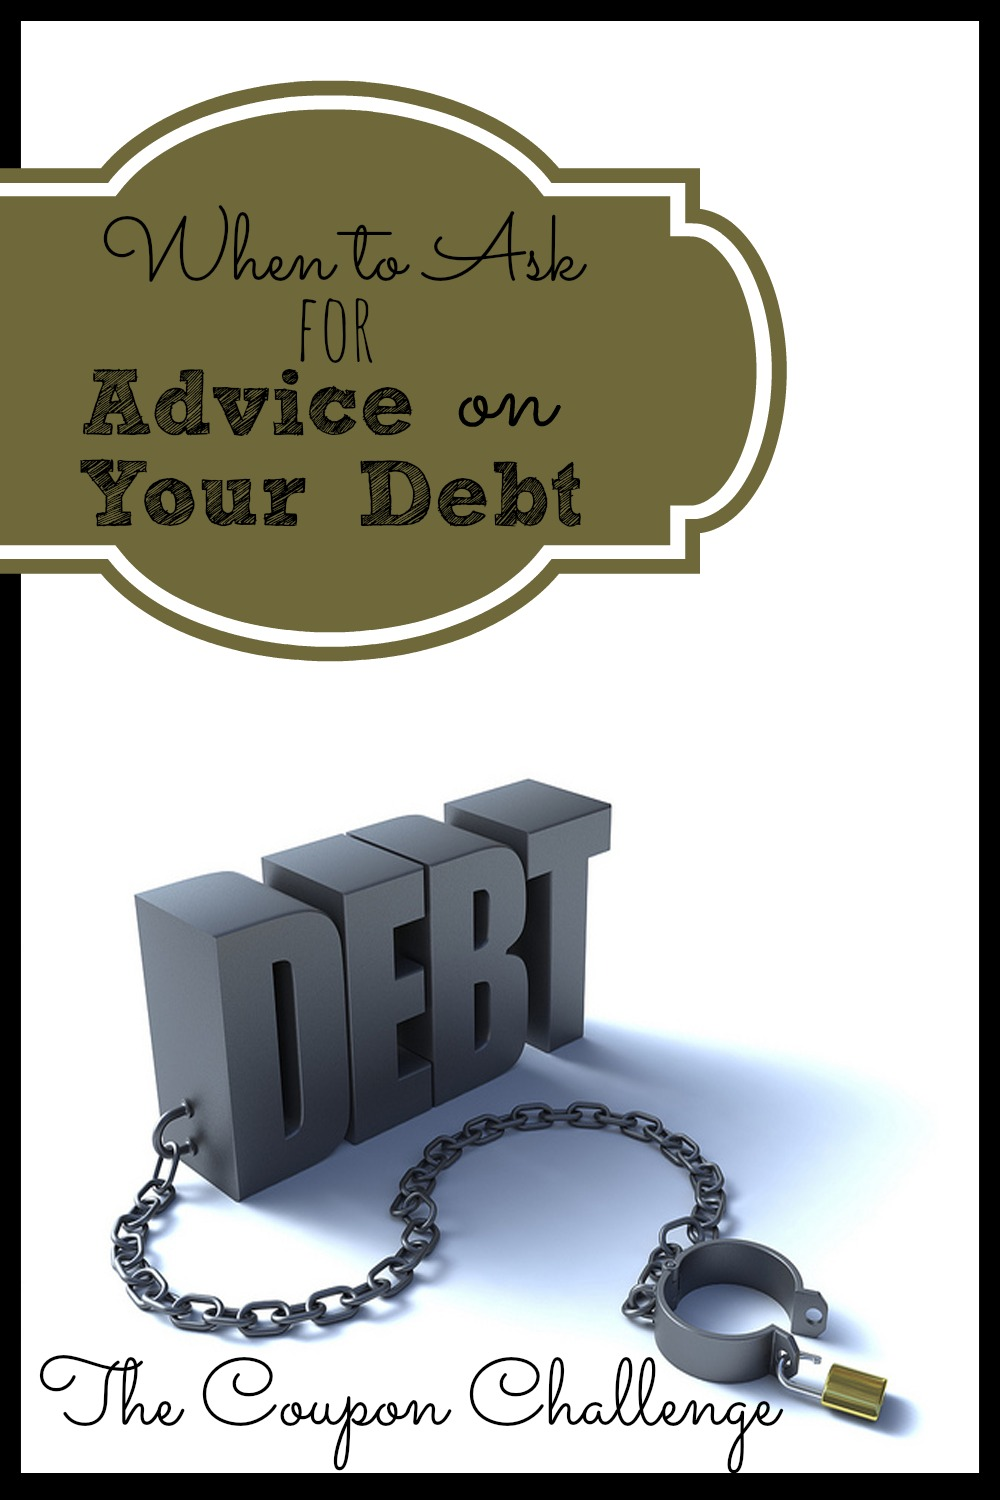 When to Ask for Advice On Your Debt